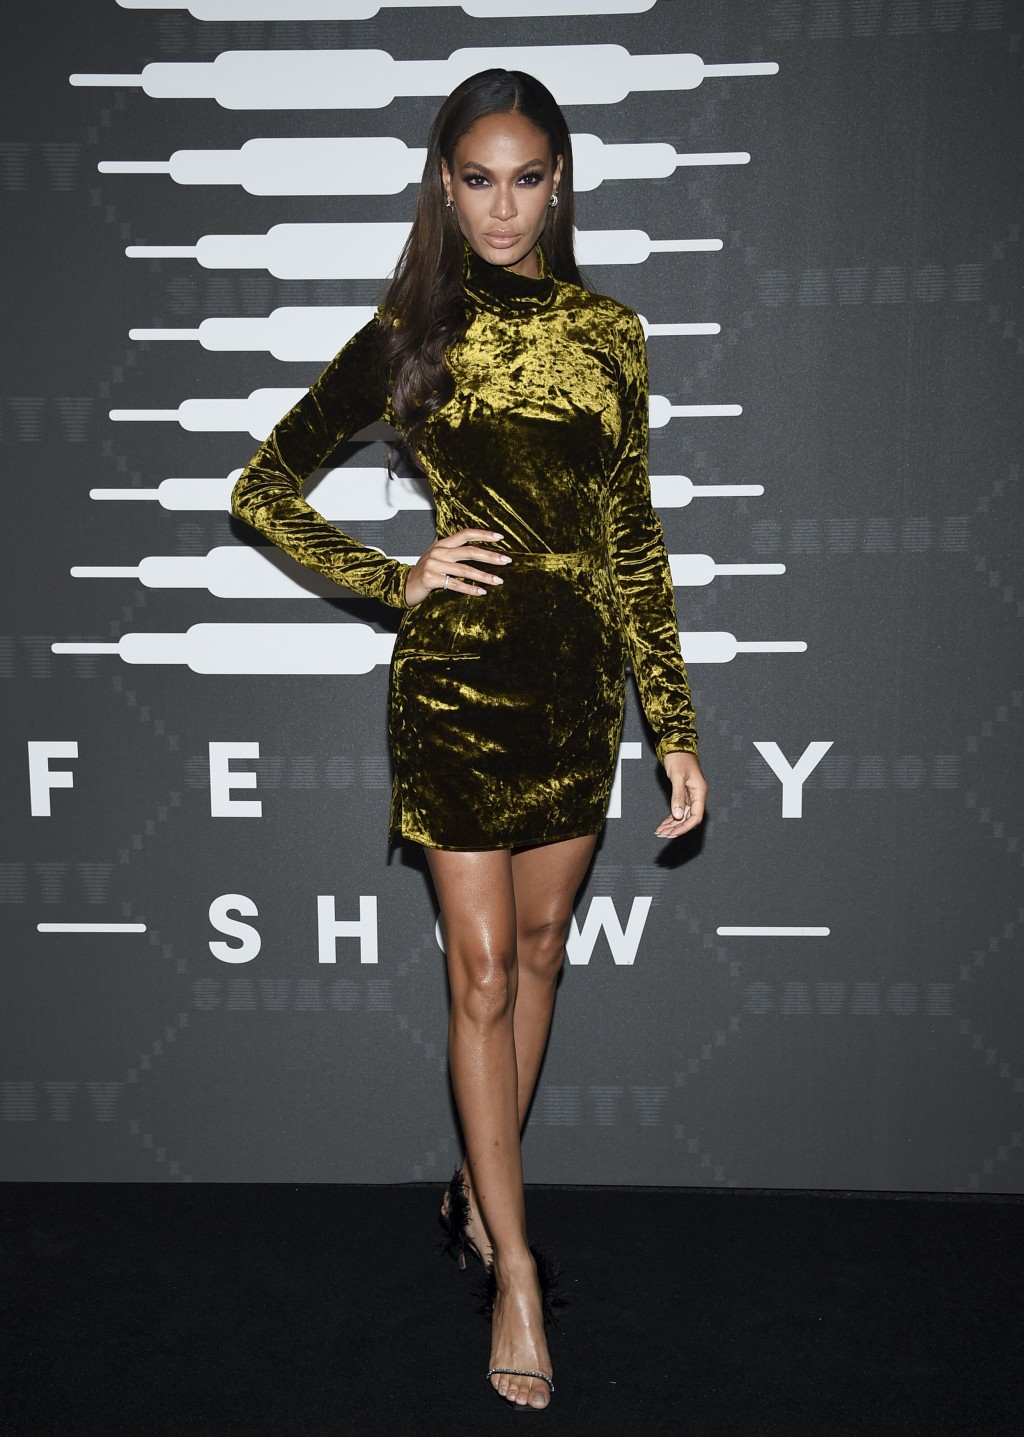 Model Joan Smalls attends the Spring/Summer 2020 Savage X Fenty show, presented by Amazon Prime, at the Barclays Center on Tuesday, Sept, 10, 2019, in...